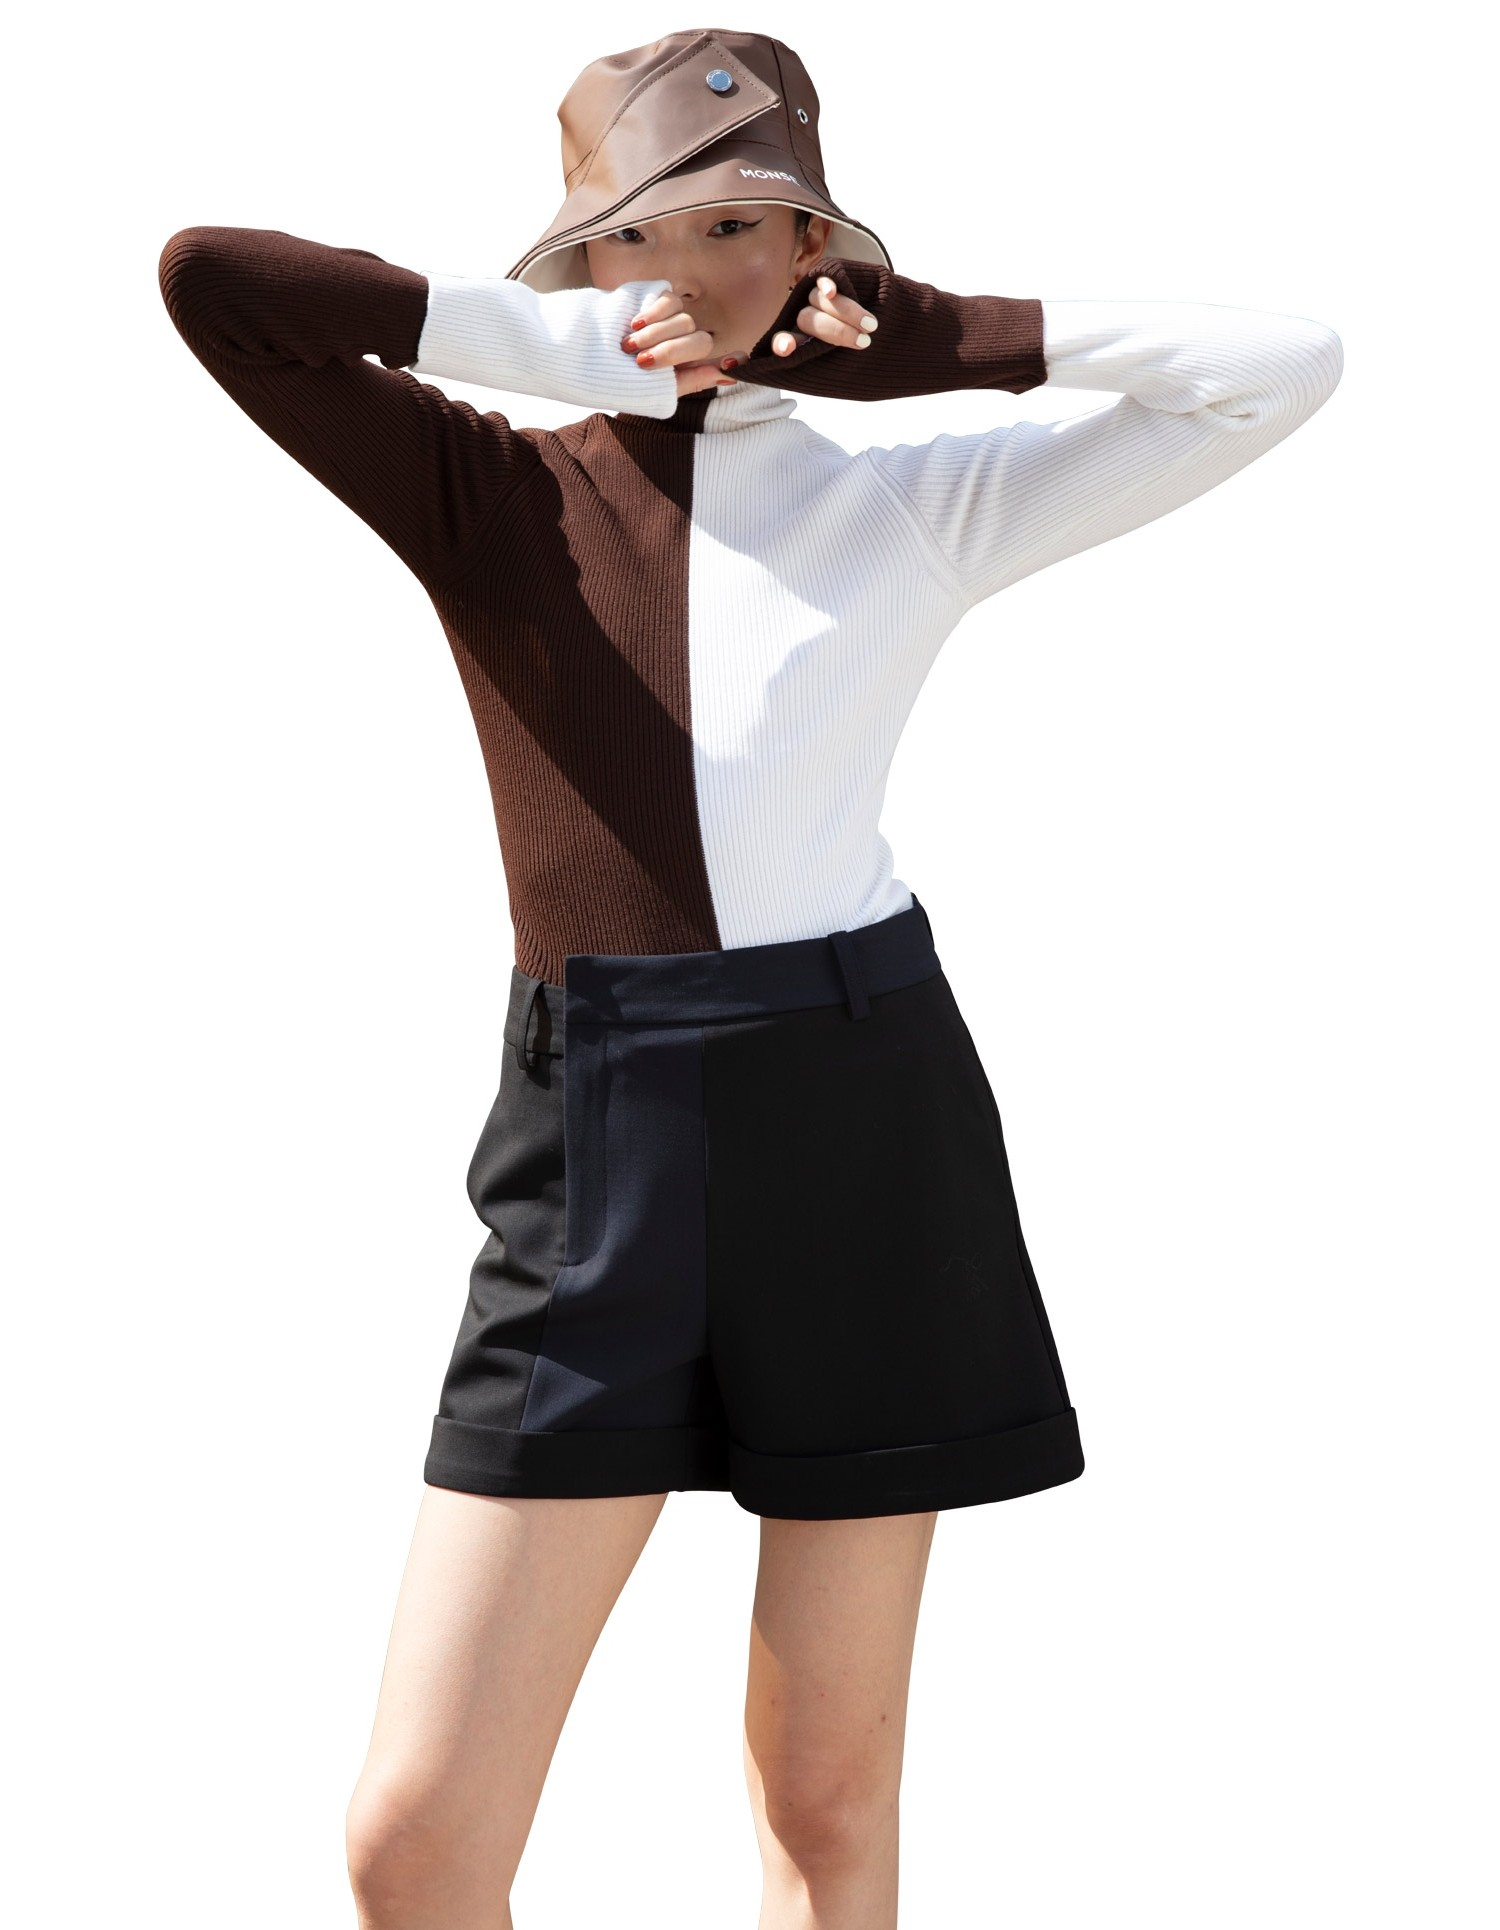 MONSE Ribbed Color Block Turtleneck Knit in Ivory and Chocolate on Model Front View